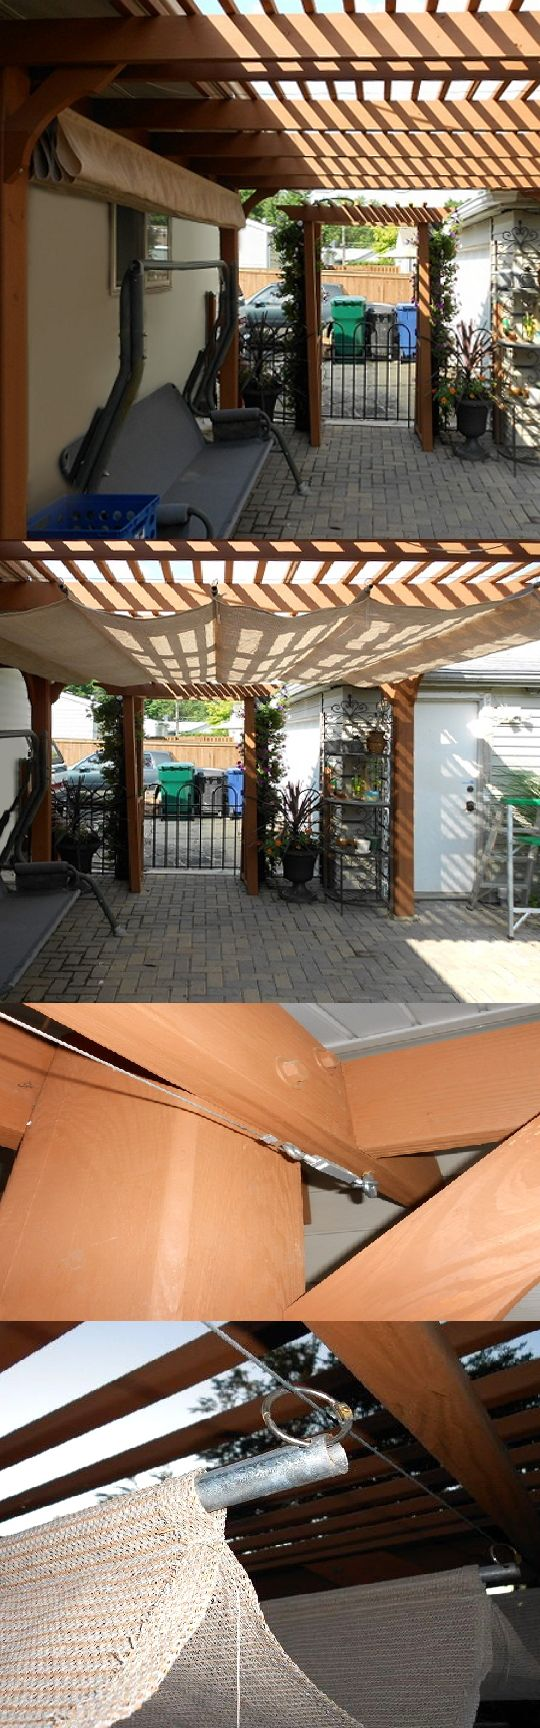 Superbe Make Your Own Retractable Shade Awning By Creating Pockets For Steel Or  Wood Bars. A Steel Ring At The End Of The Bars Allow The Awning To Slide  Along Steel ...